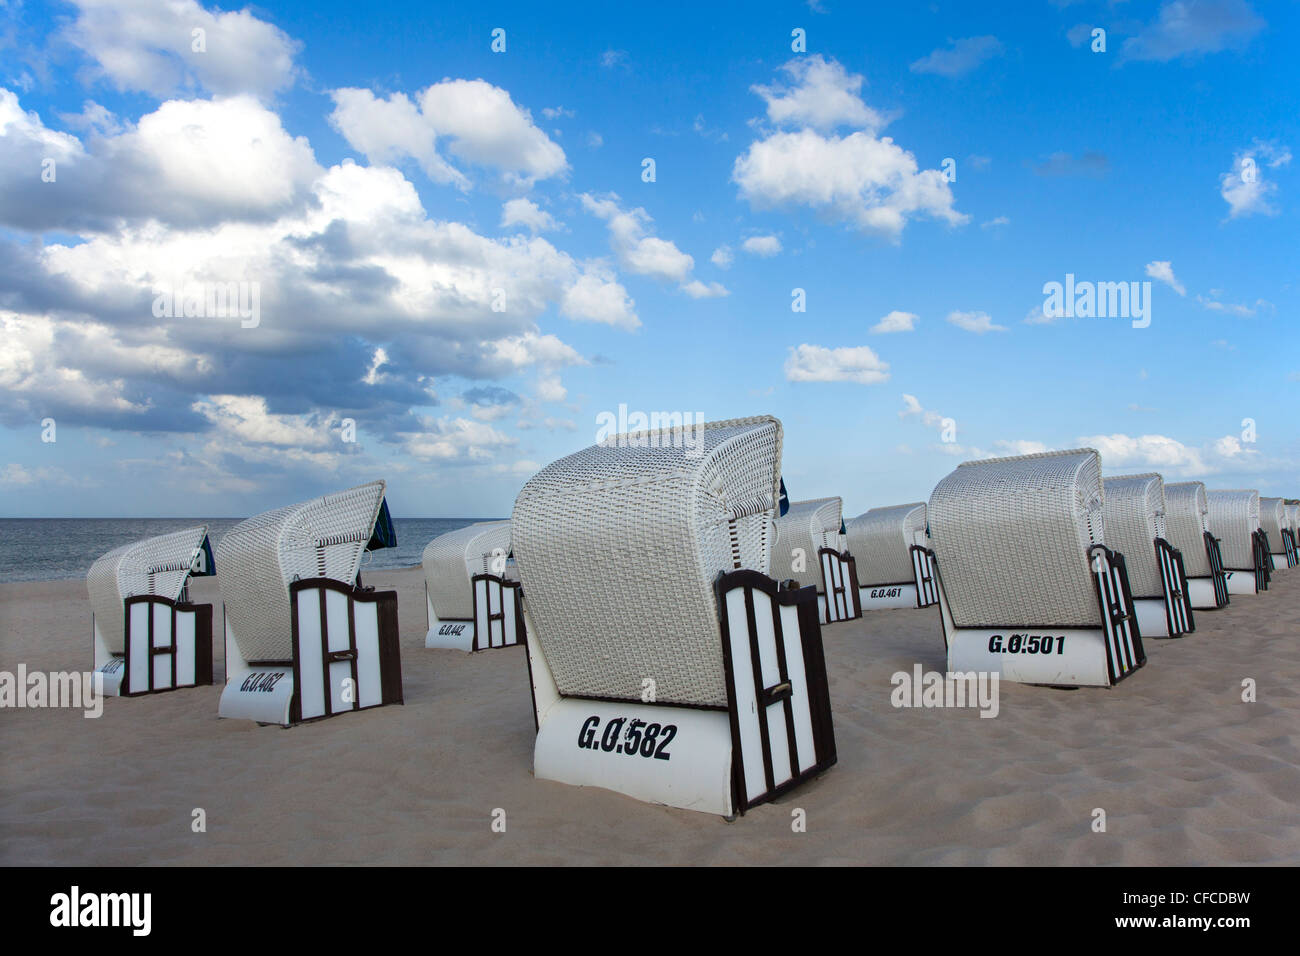 Beach chairs on the beach, Baabe seaside resort, Ruegen island, Baltic Sea, Mecklenburg-West Pomerania, Germany - Stock Image